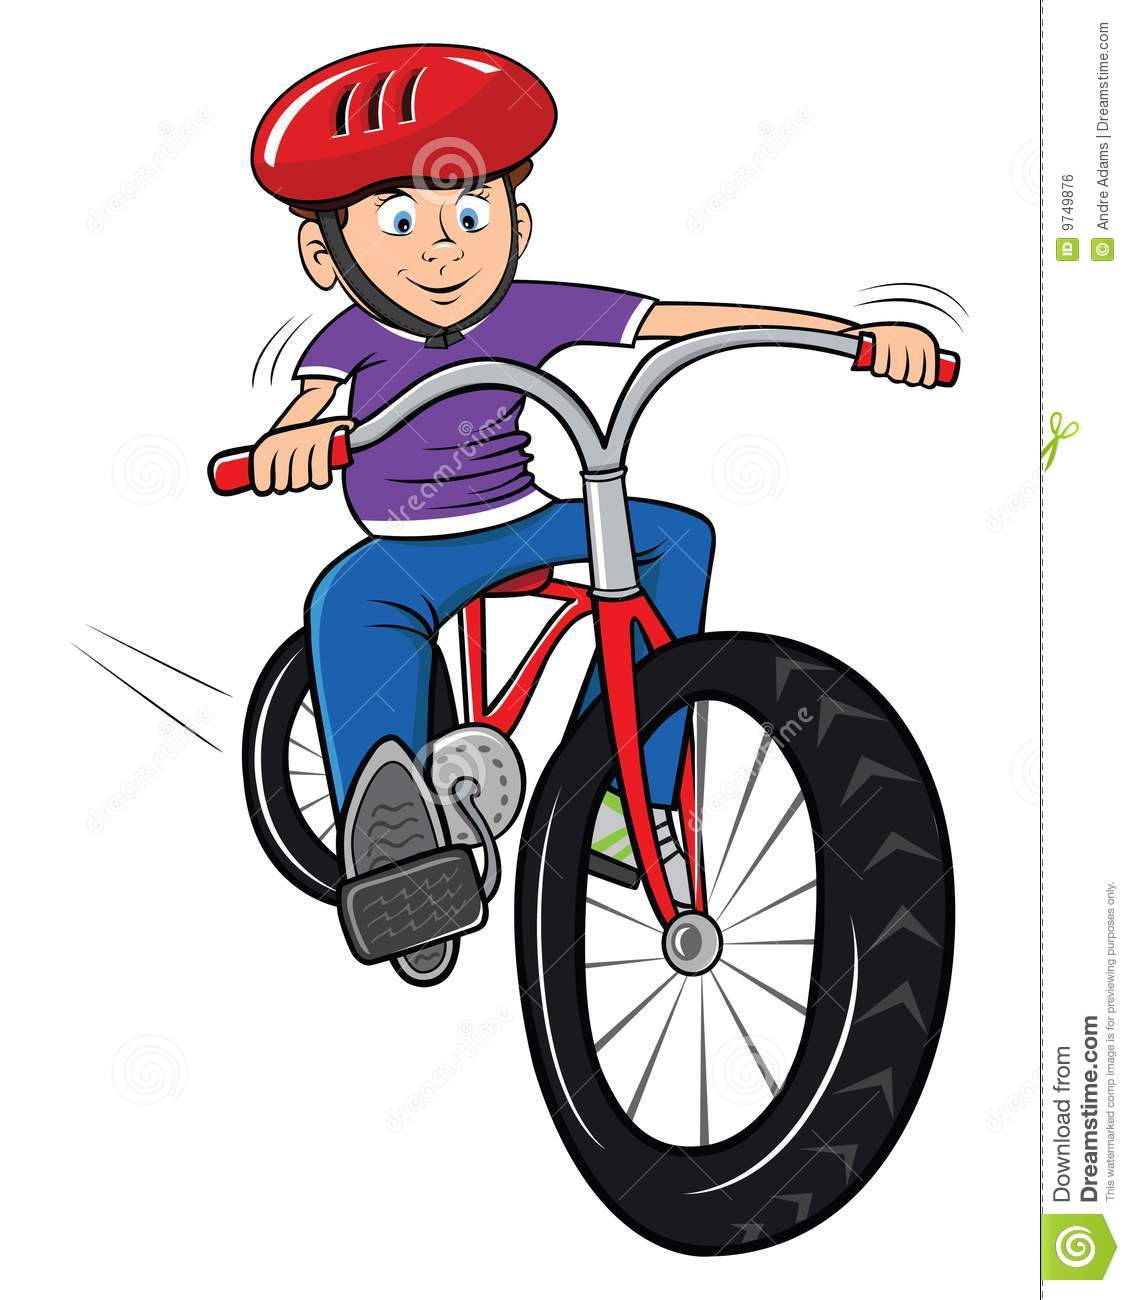 Child Bike Helmets Clipart.